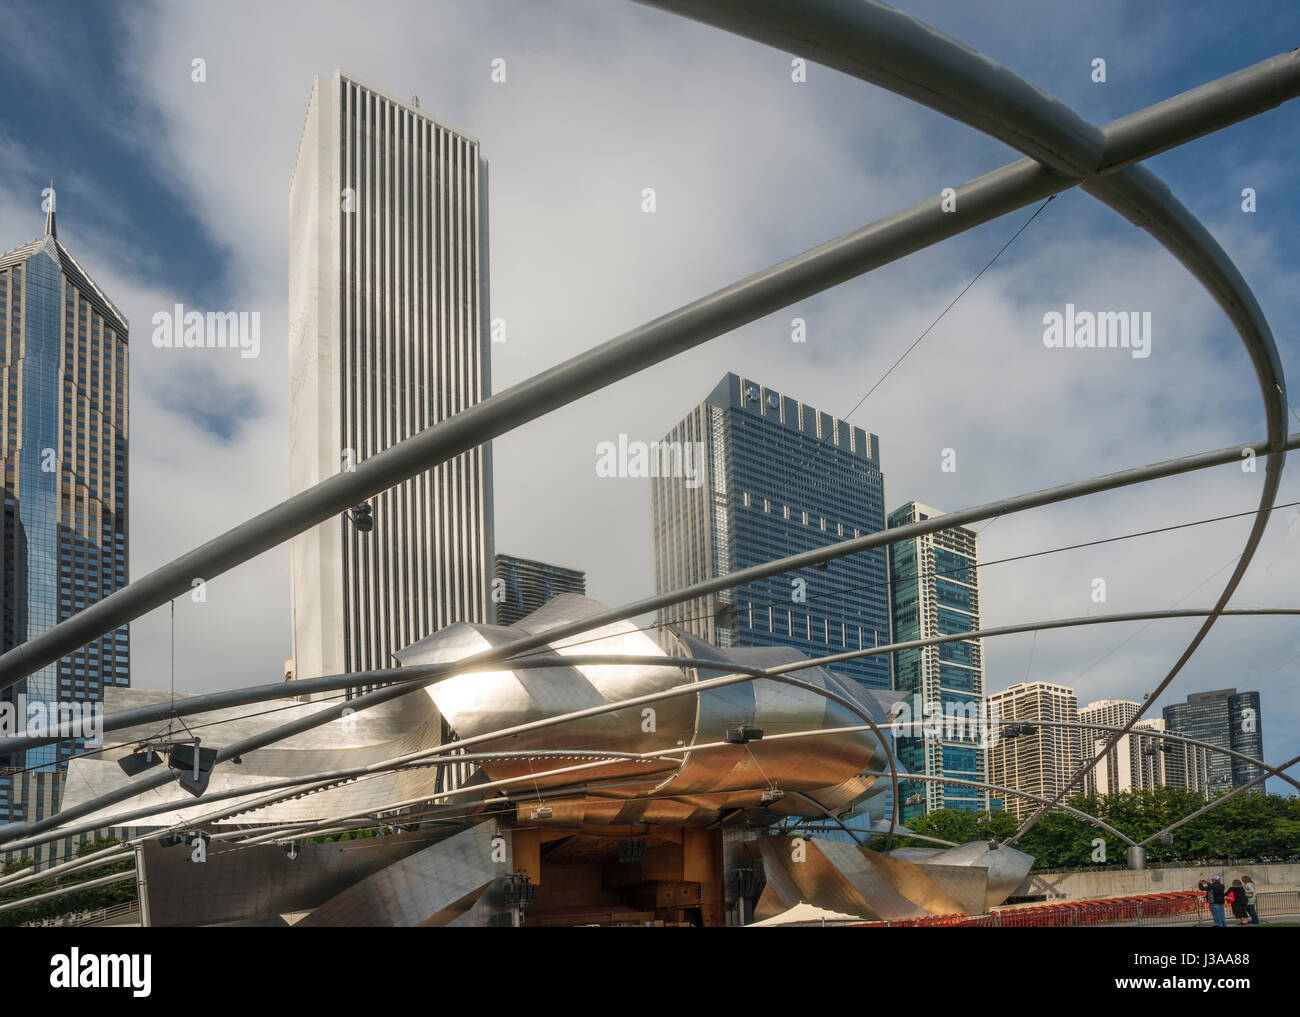 Chicago, Harris Theater by Frank Gehry  new Millenium Park USA Stock Photo